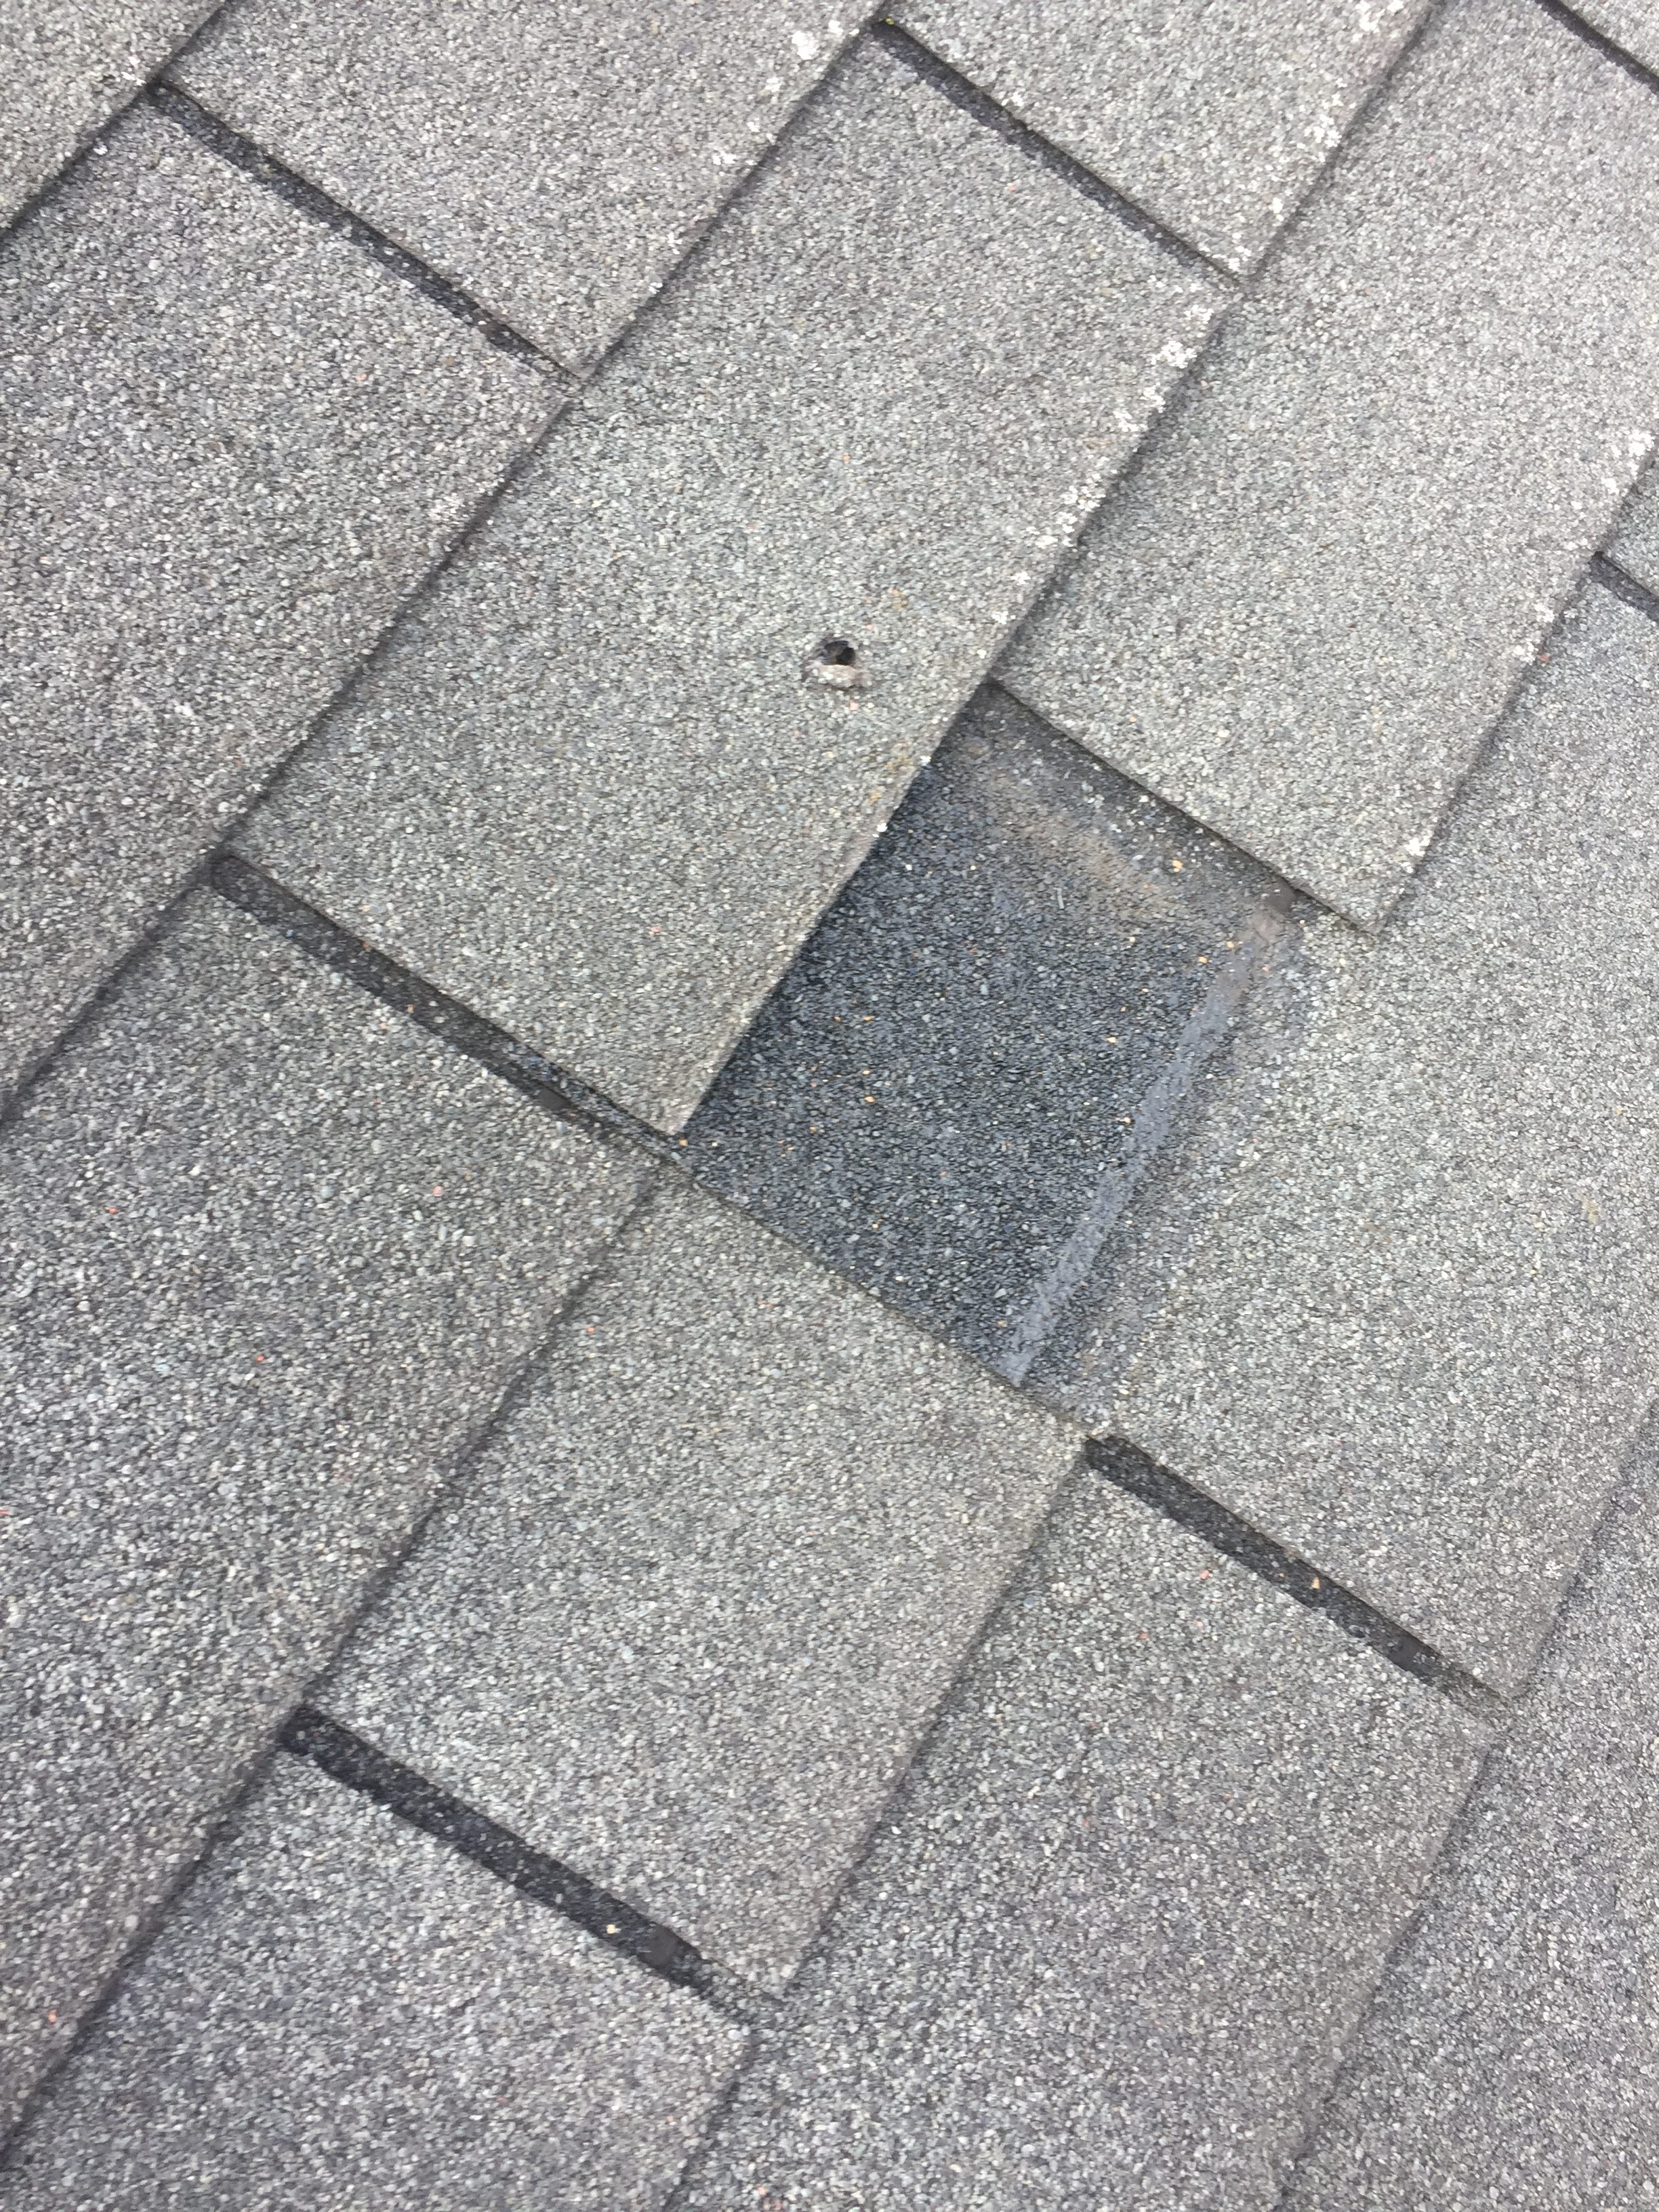 Shingle Roofs Welte Roofing